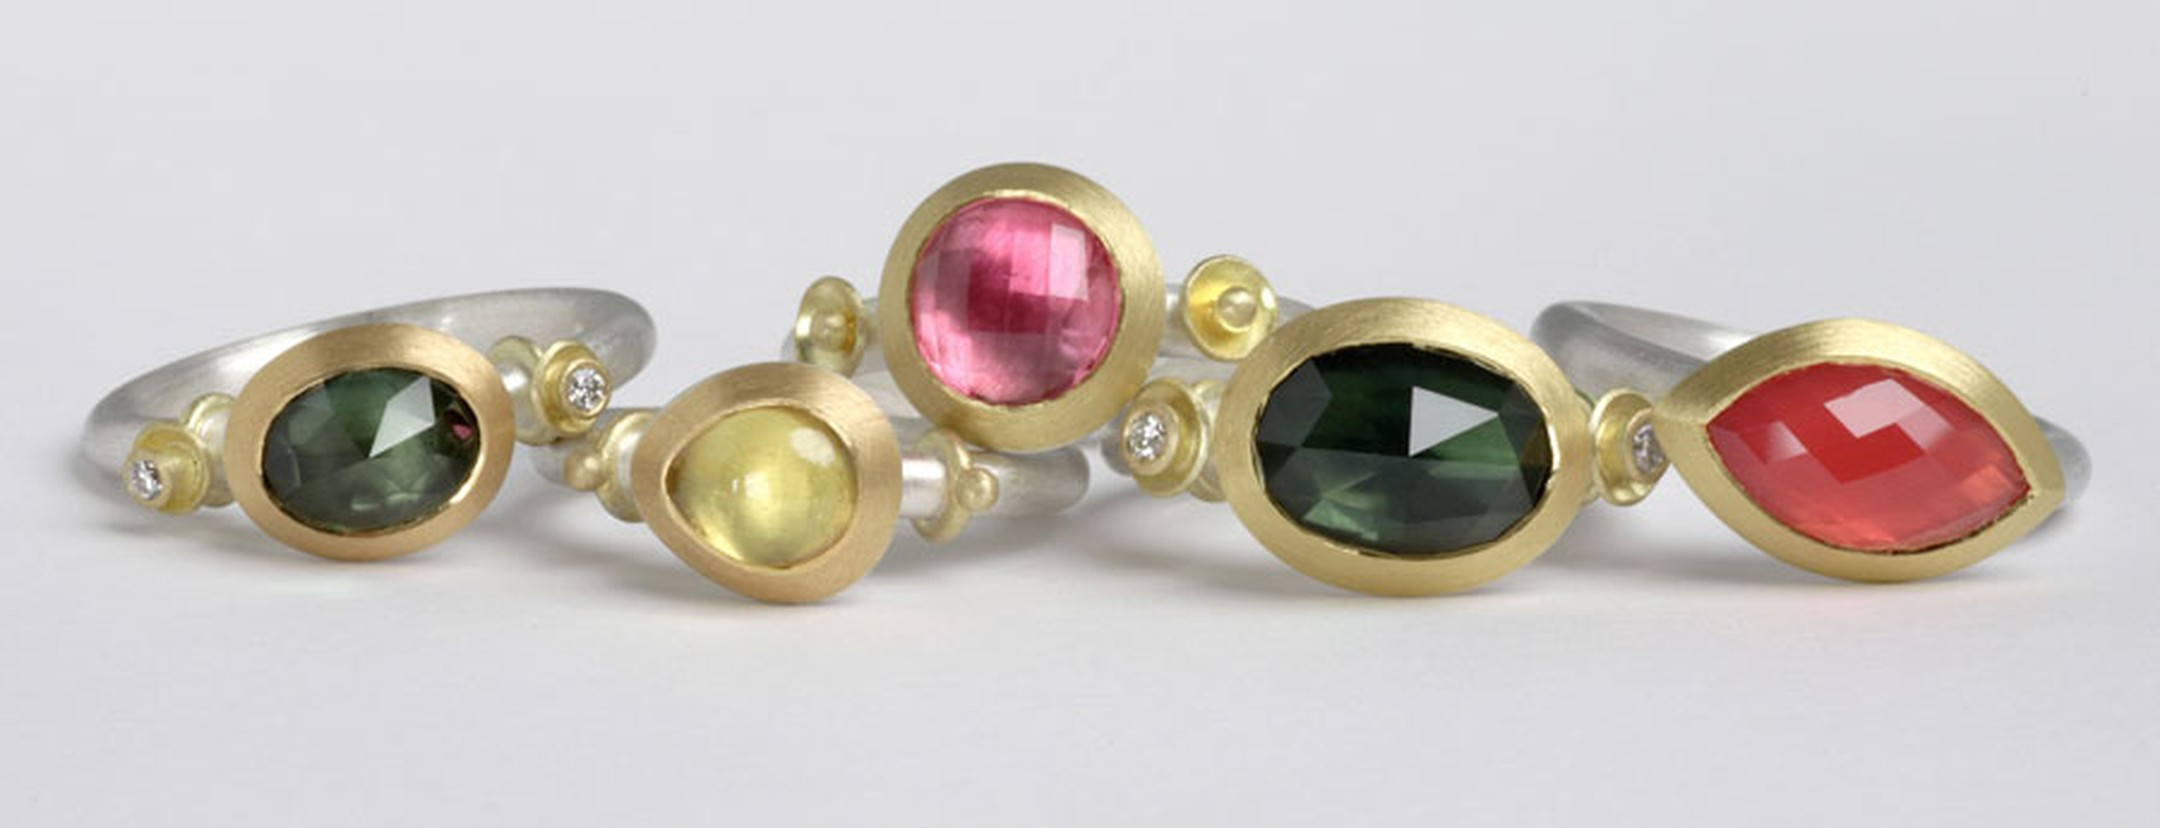 Kath Libbert. Mark-Nuell_Rings-with-Australian-sapphires,-spinels,-diamonds